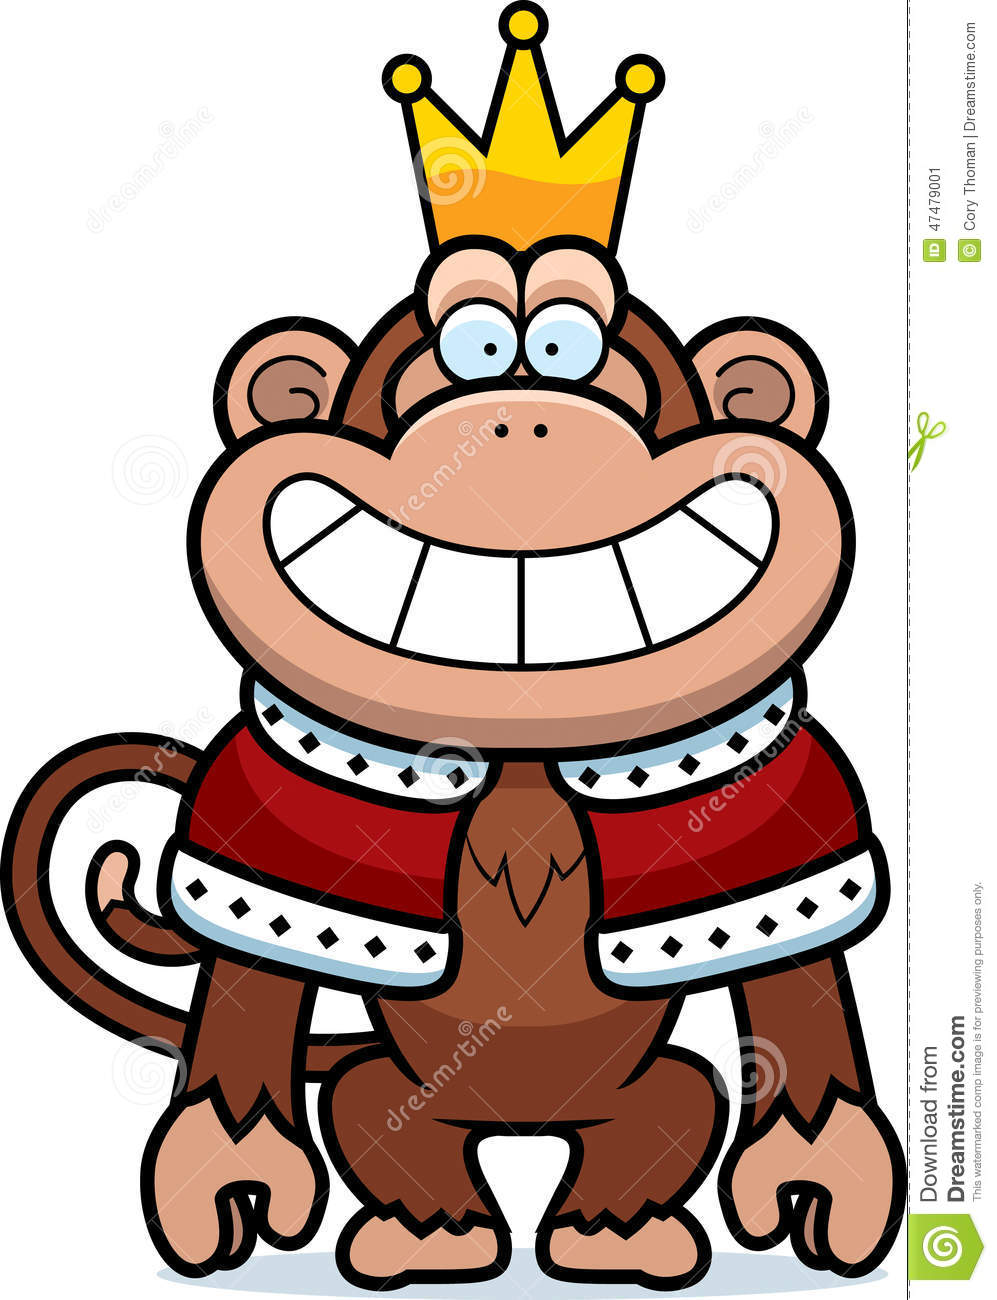 Clipart King Monkey Wearing A Crown And Robe - Royalty ... |Monkey King Crown